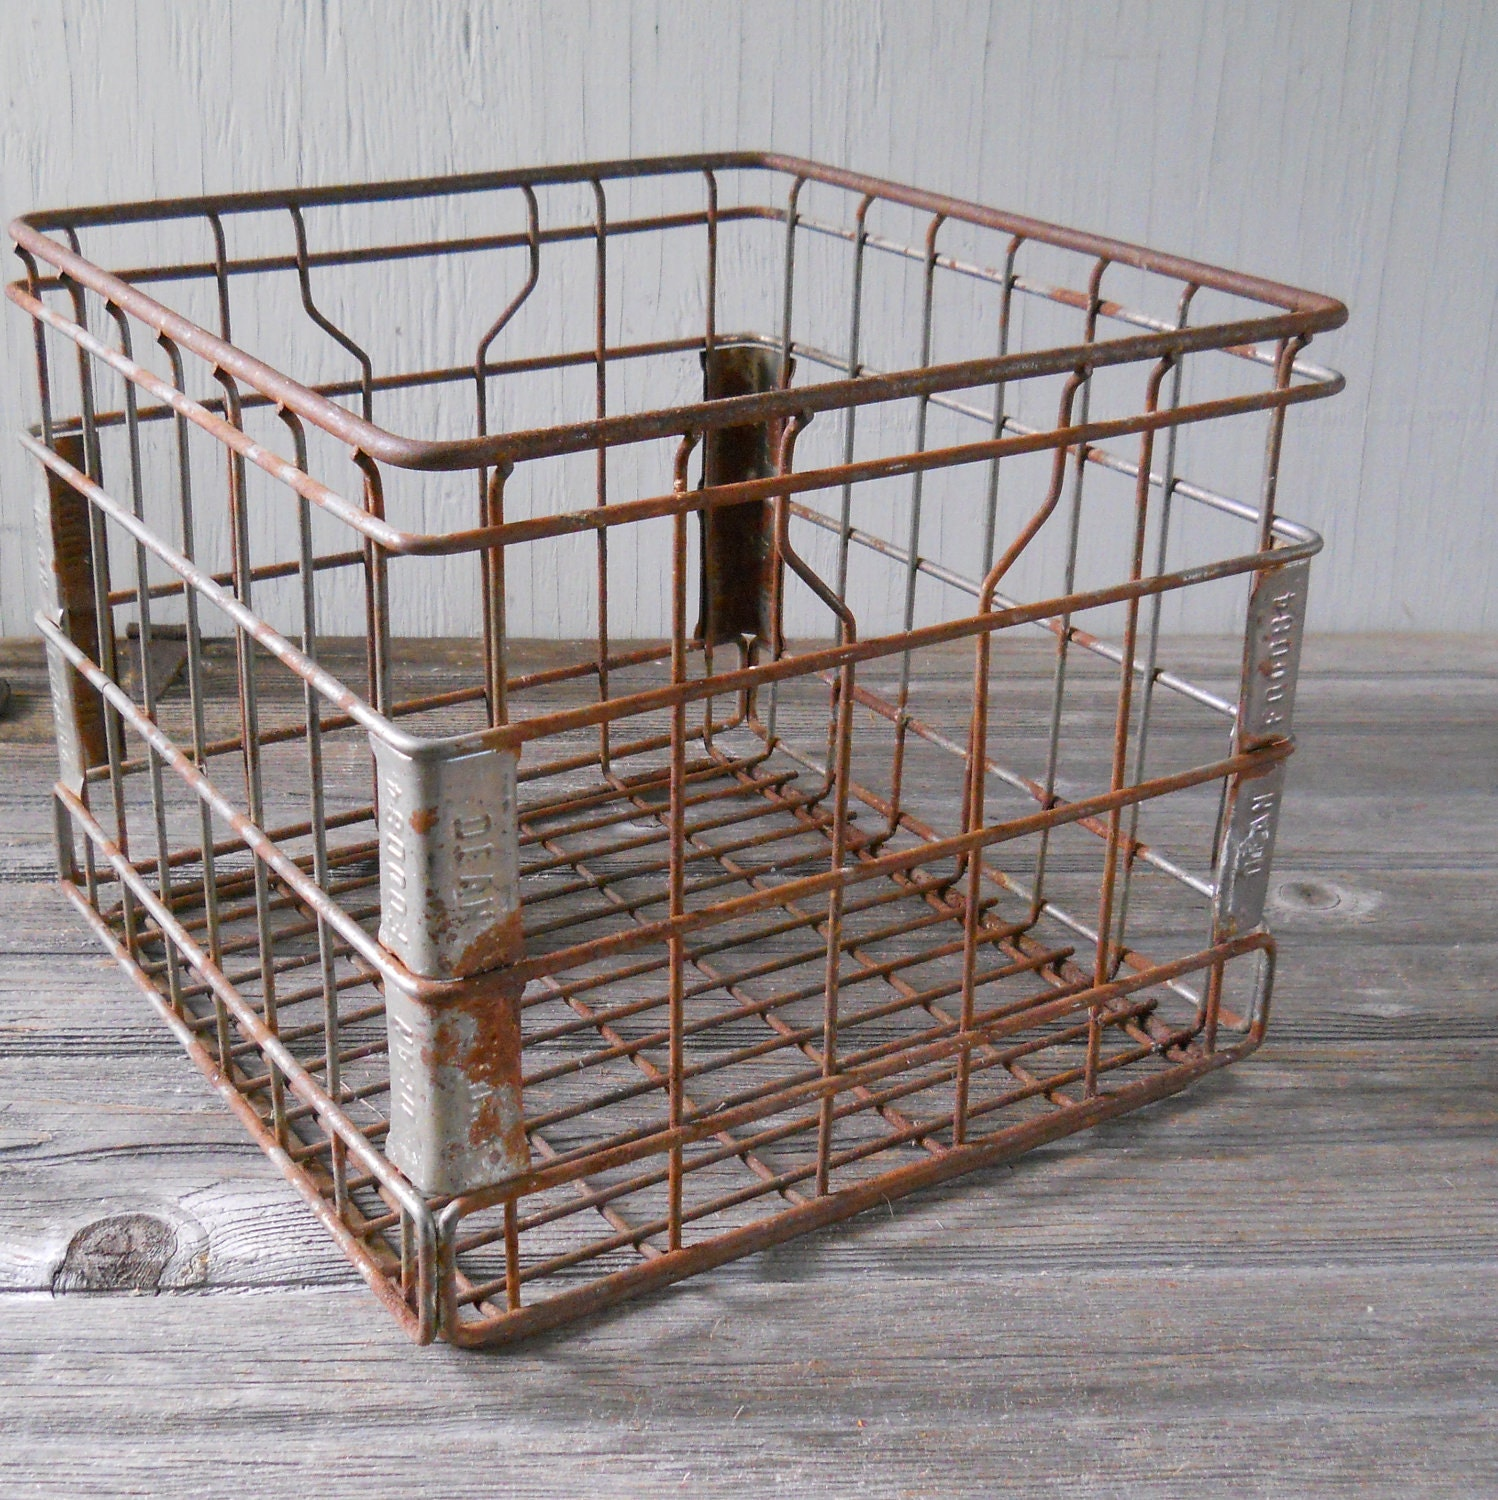 Vintage Industrial Metal Milk Crate Dean Foods